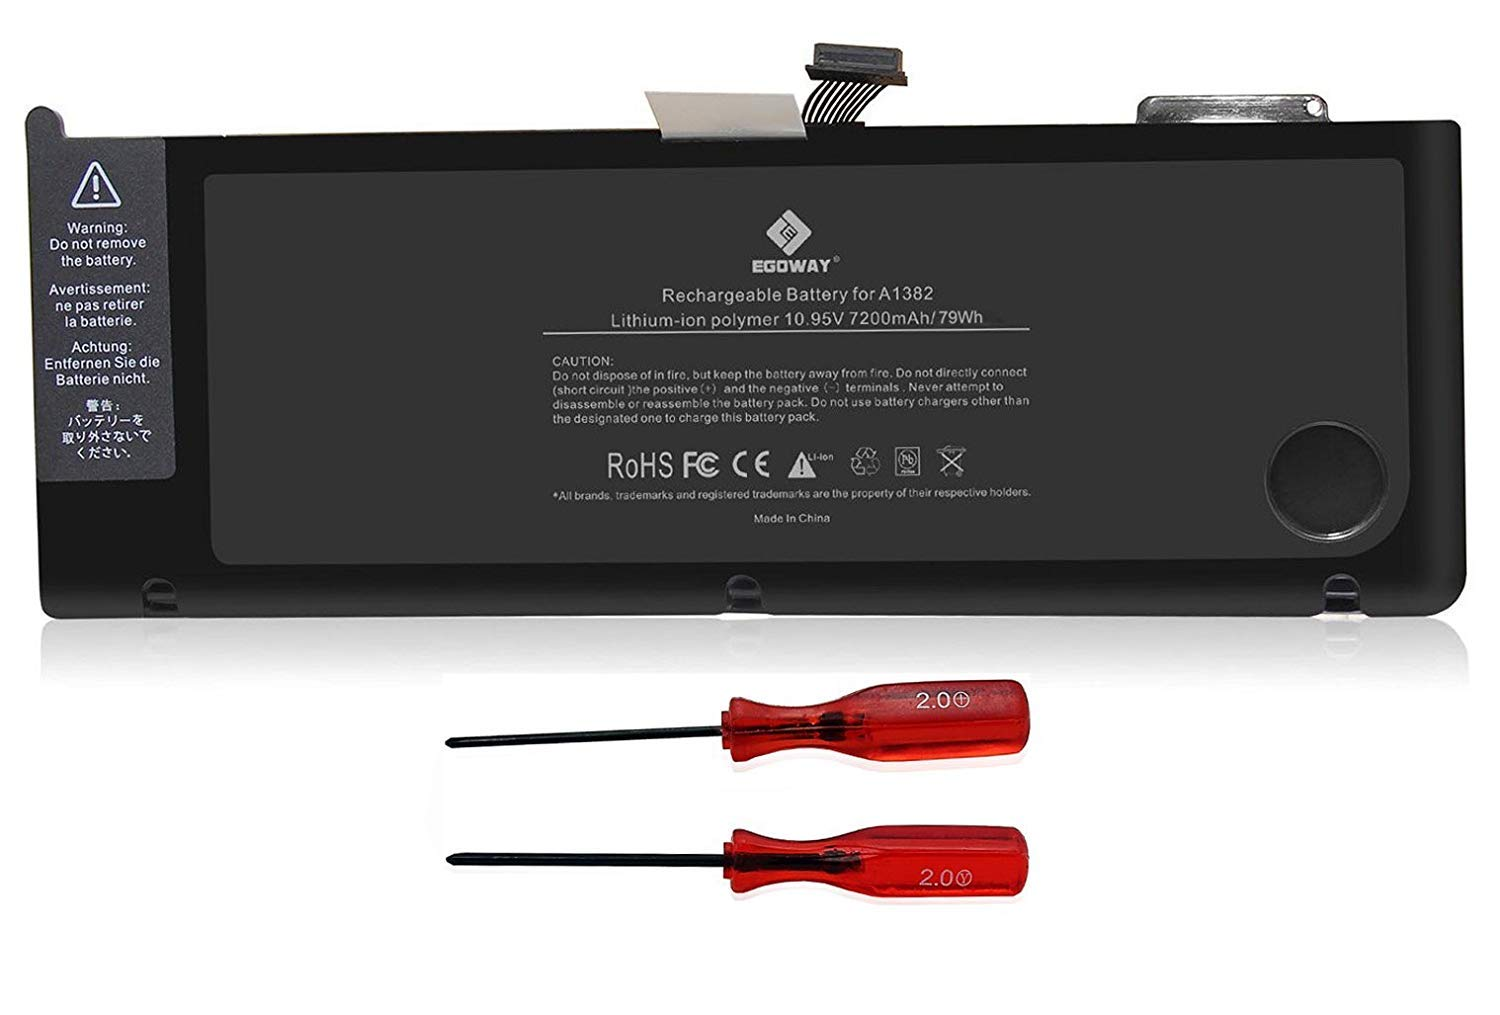 E EGOWAY Replacement Laptop Battery Compatible for MacBook Pro 15 inch A1382 A1286 Early/Late 2011, Mid 2012